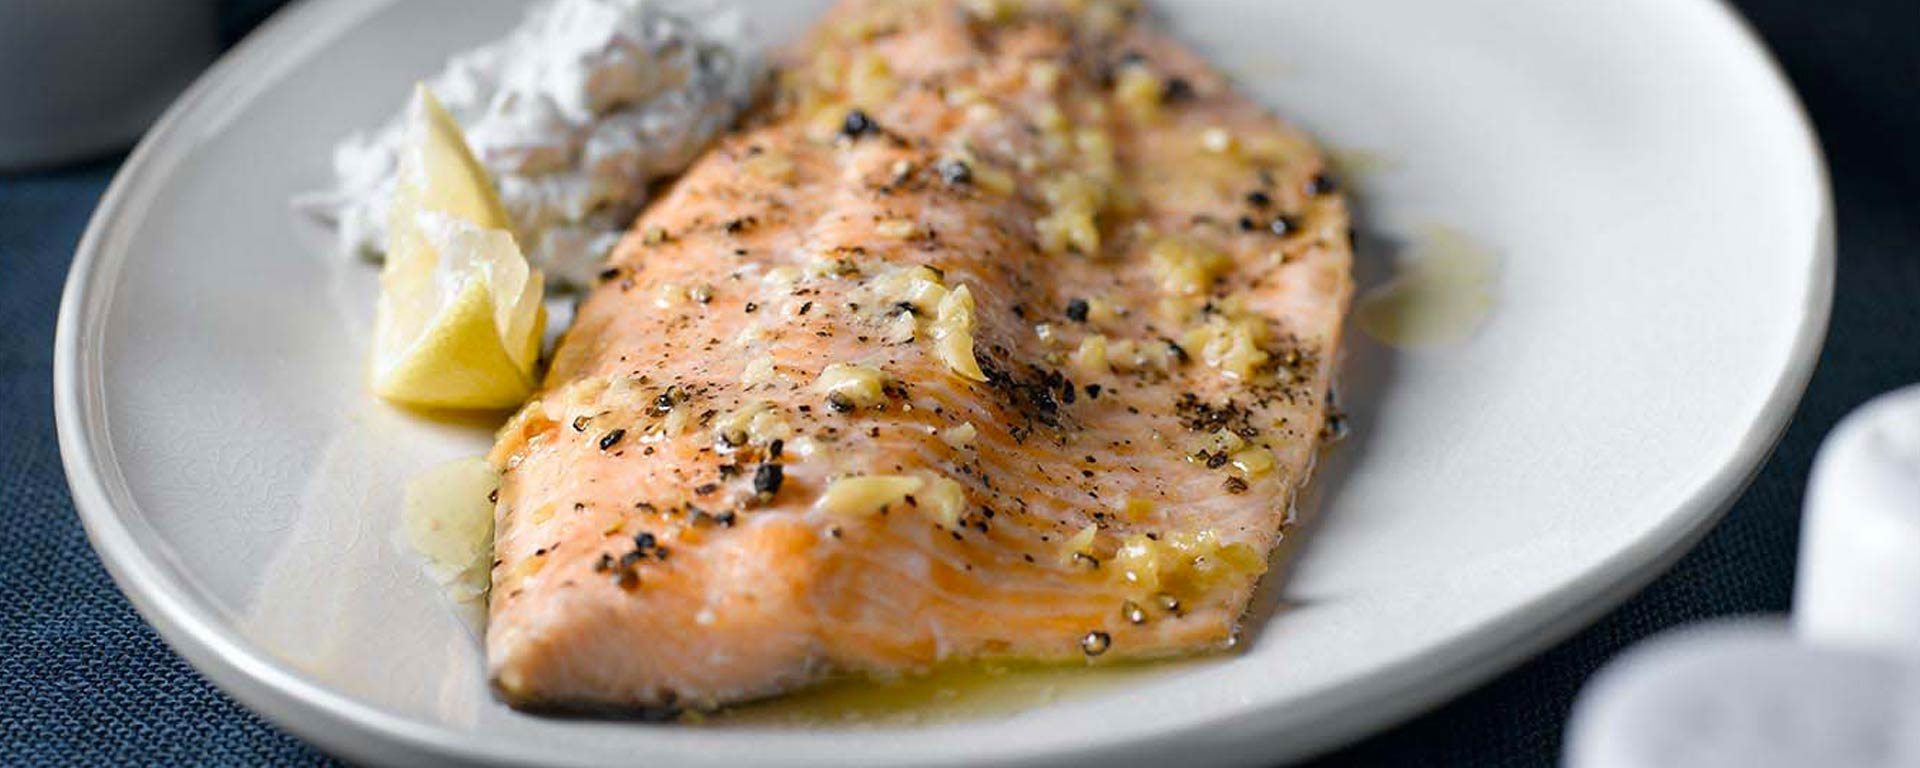 Photo for - Roasted Rainbow Trout with Creamy Cucumber Relish